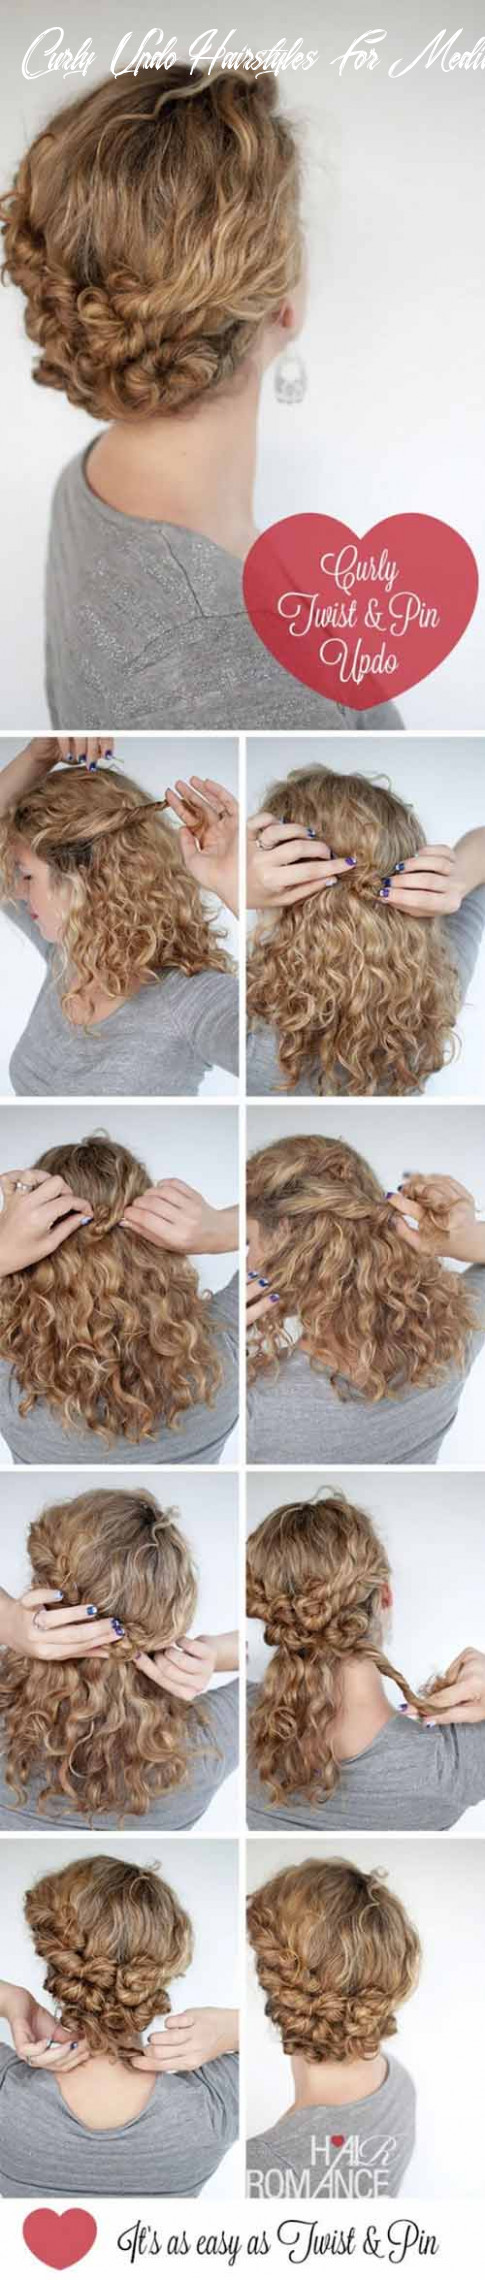 11 Incredibly Stunning DIY Updos For Curly Hair